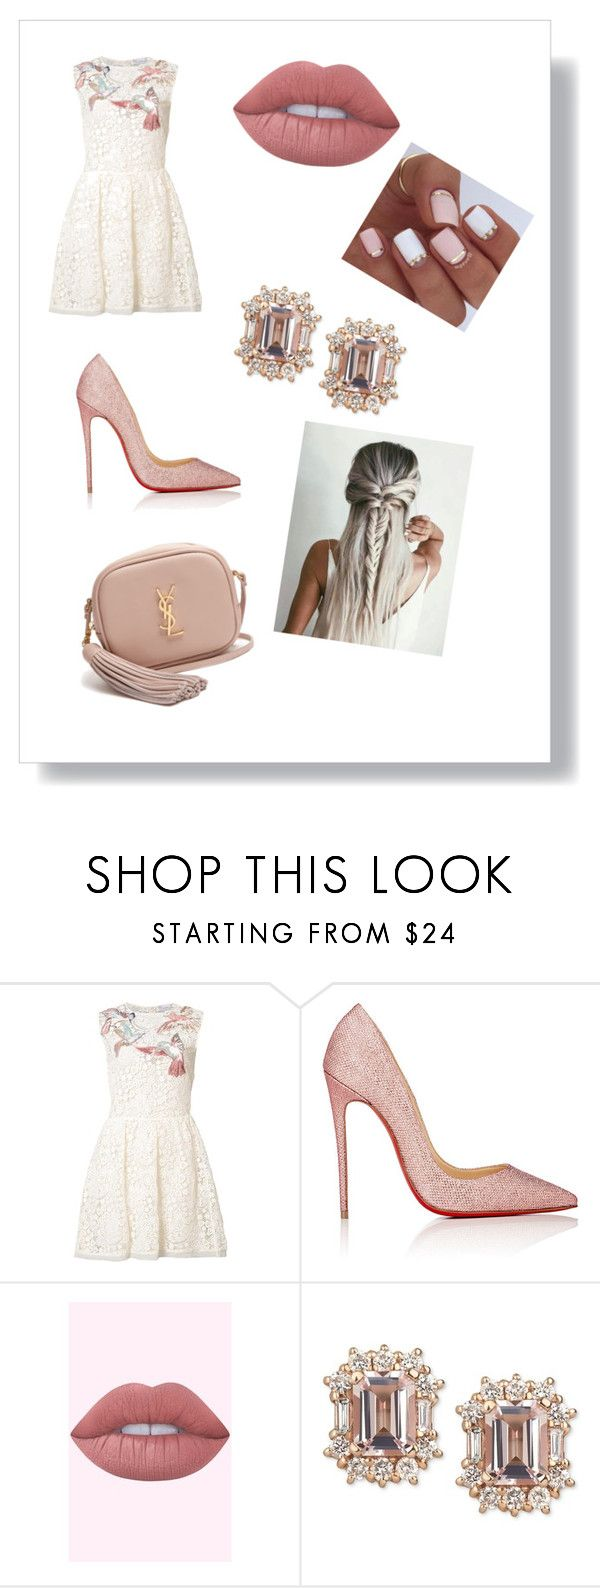 """""""Untitled #125"""" by giuggi21 ❤ liked on Polyvore featuring RED Valentino, Christian Louboutin and Yves Saint Laurent"""